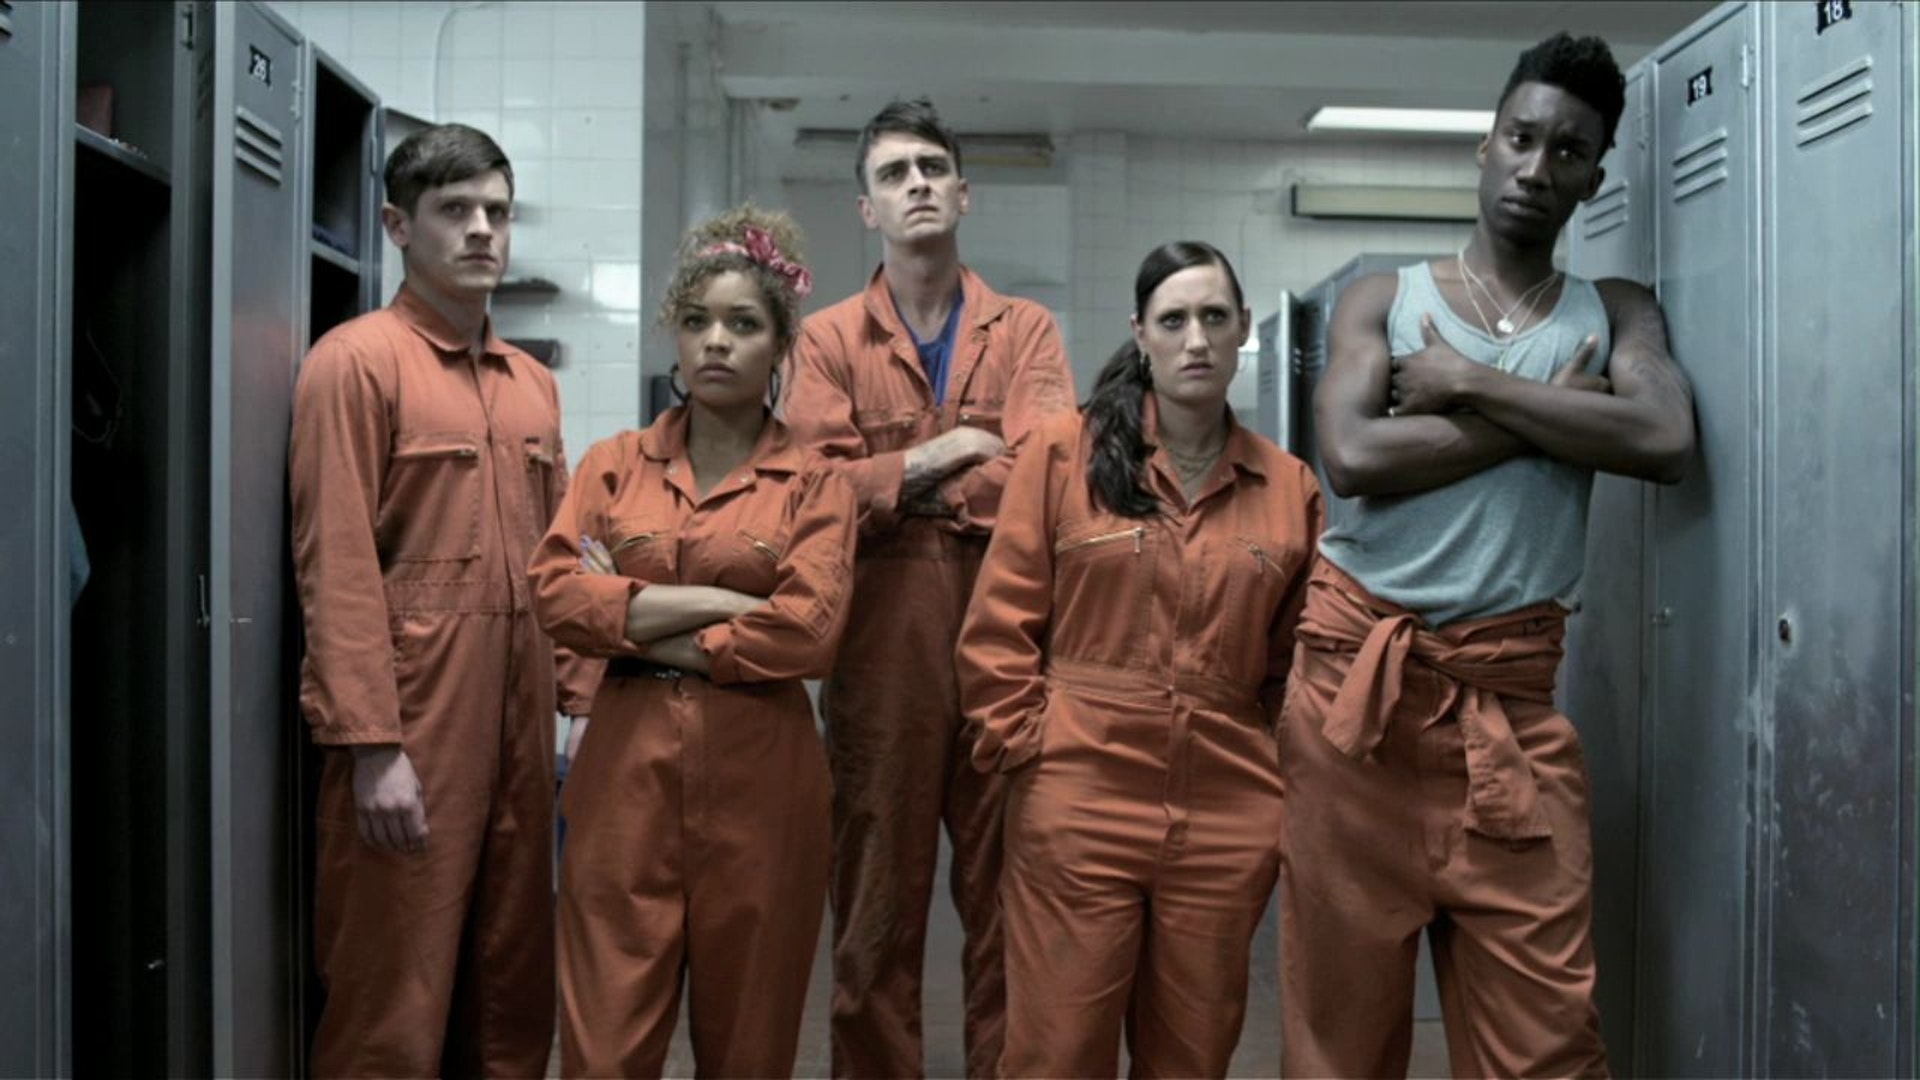 Misfits-Screencaps-misfits-e4-36987533-1280-720